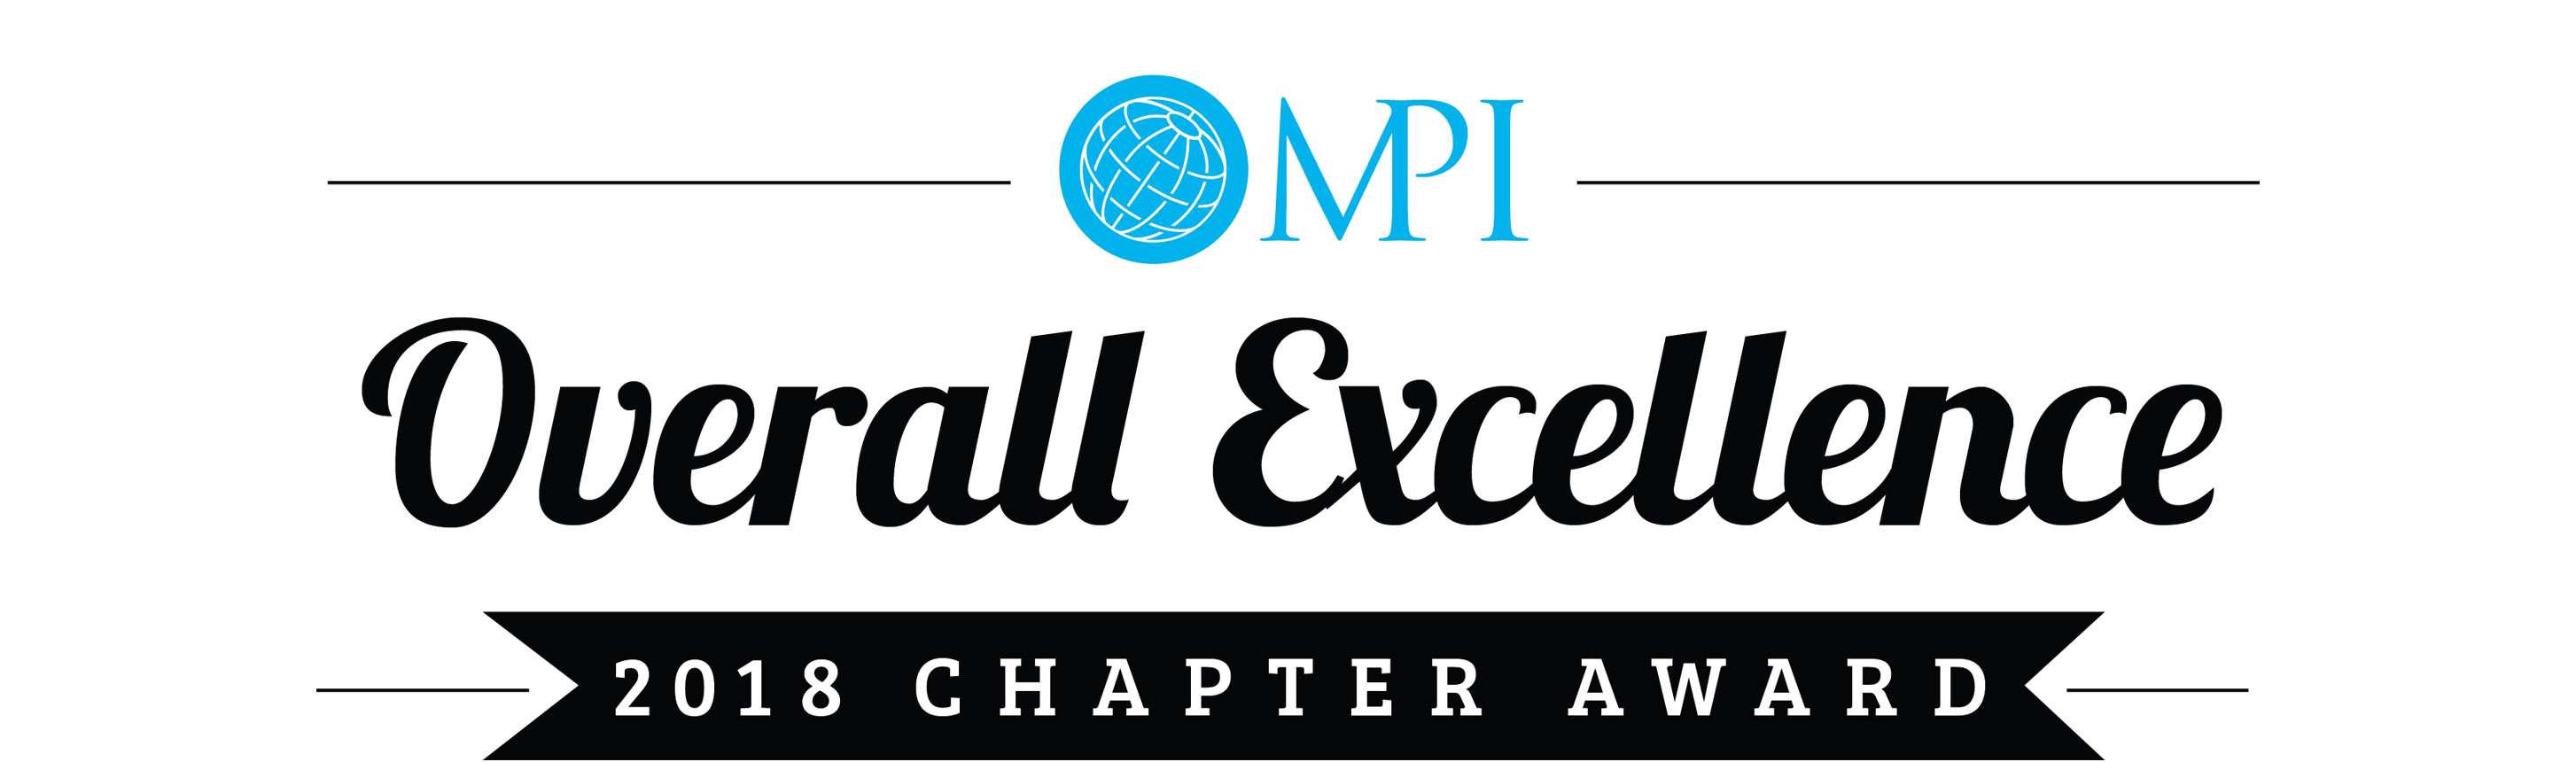 2018 Overall Excellence Award